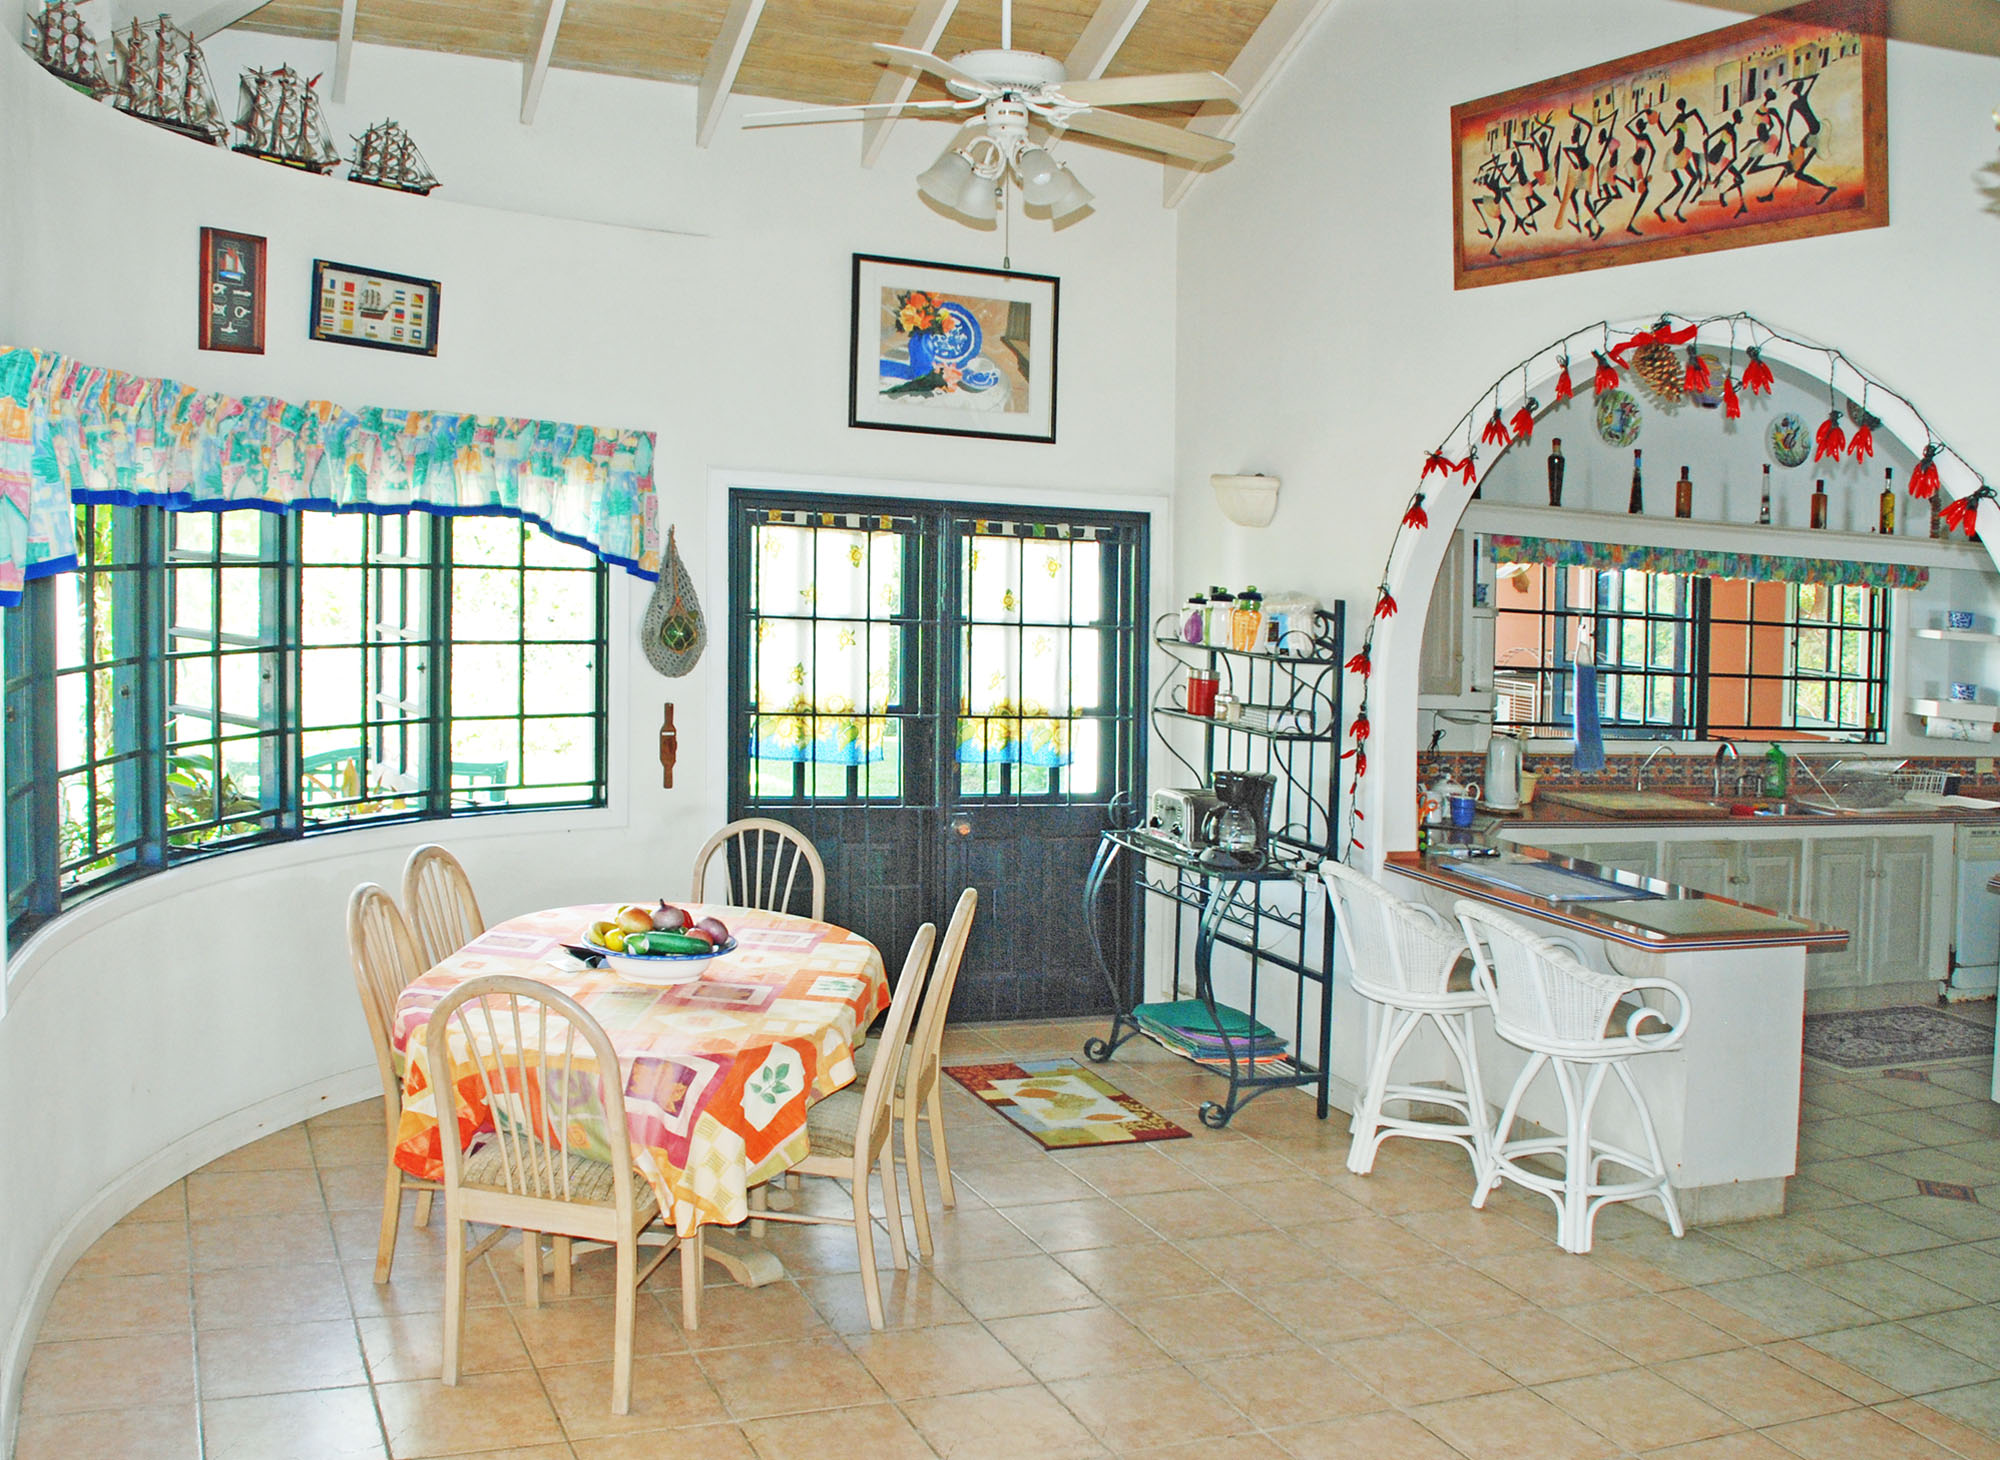 SOL Y MAR VILLA, TOBAGO W.I. Breakfast room + bar seating; arched entrance to the kitchen